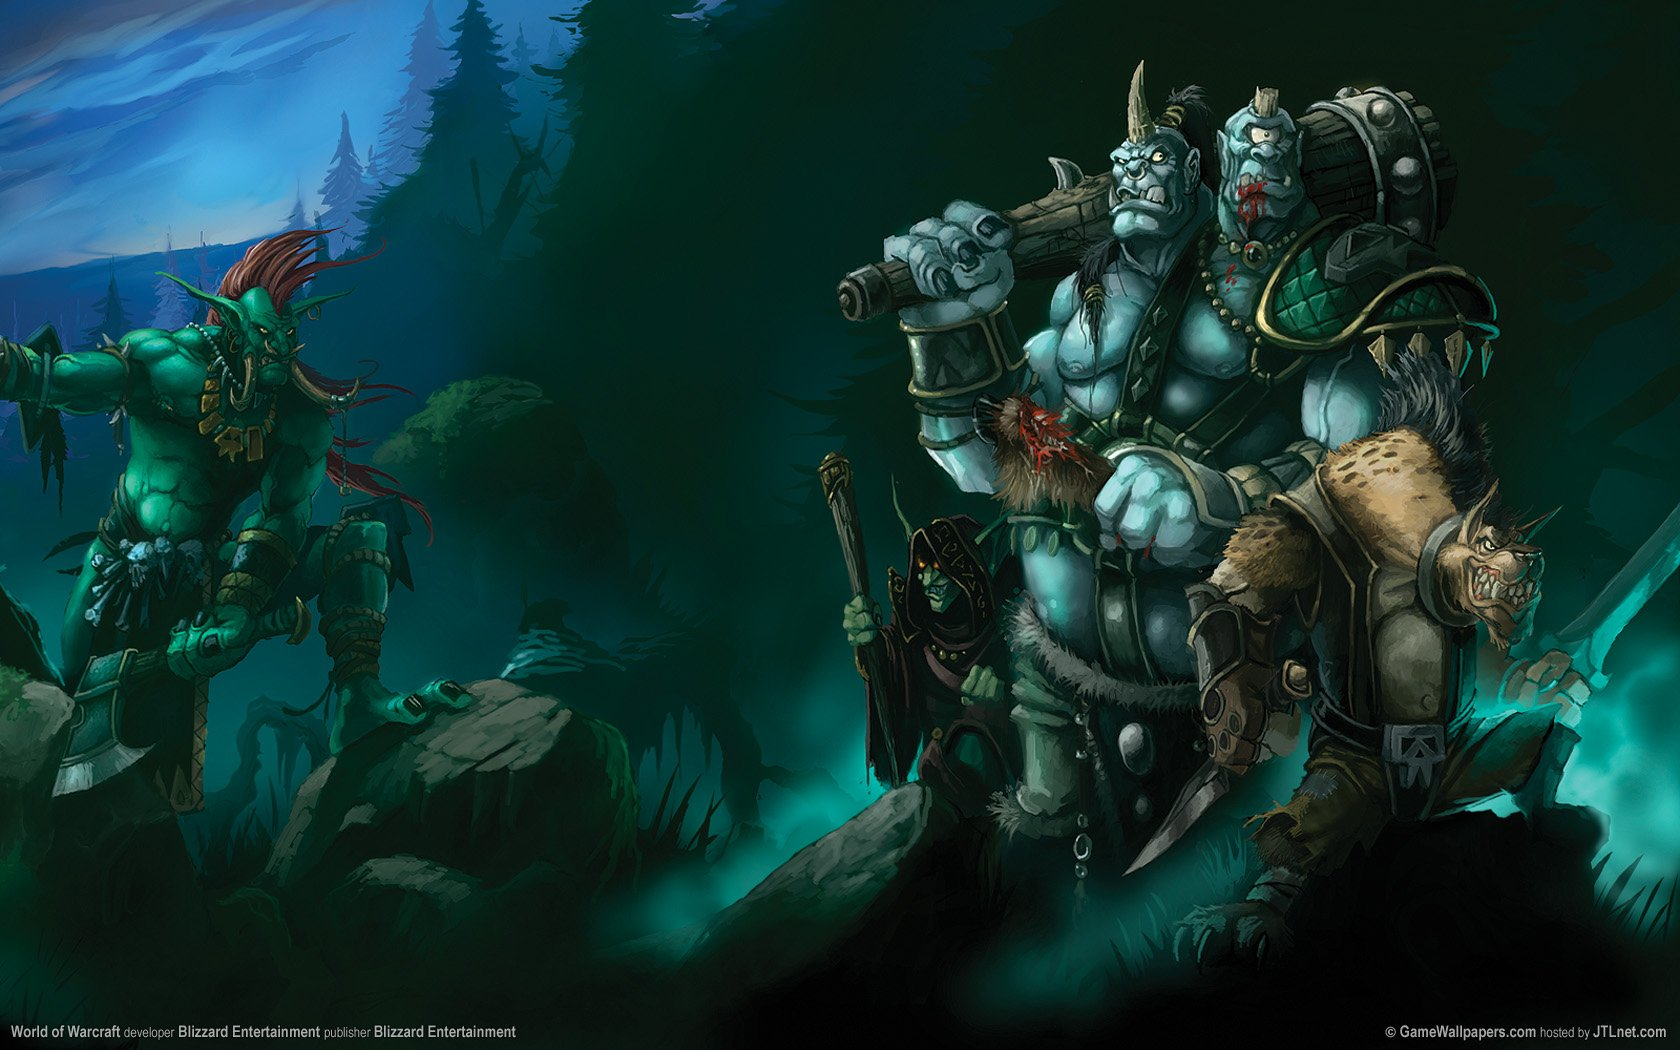 World of Warcraft wallpapers World of Warcraft stock photos 1680x1050